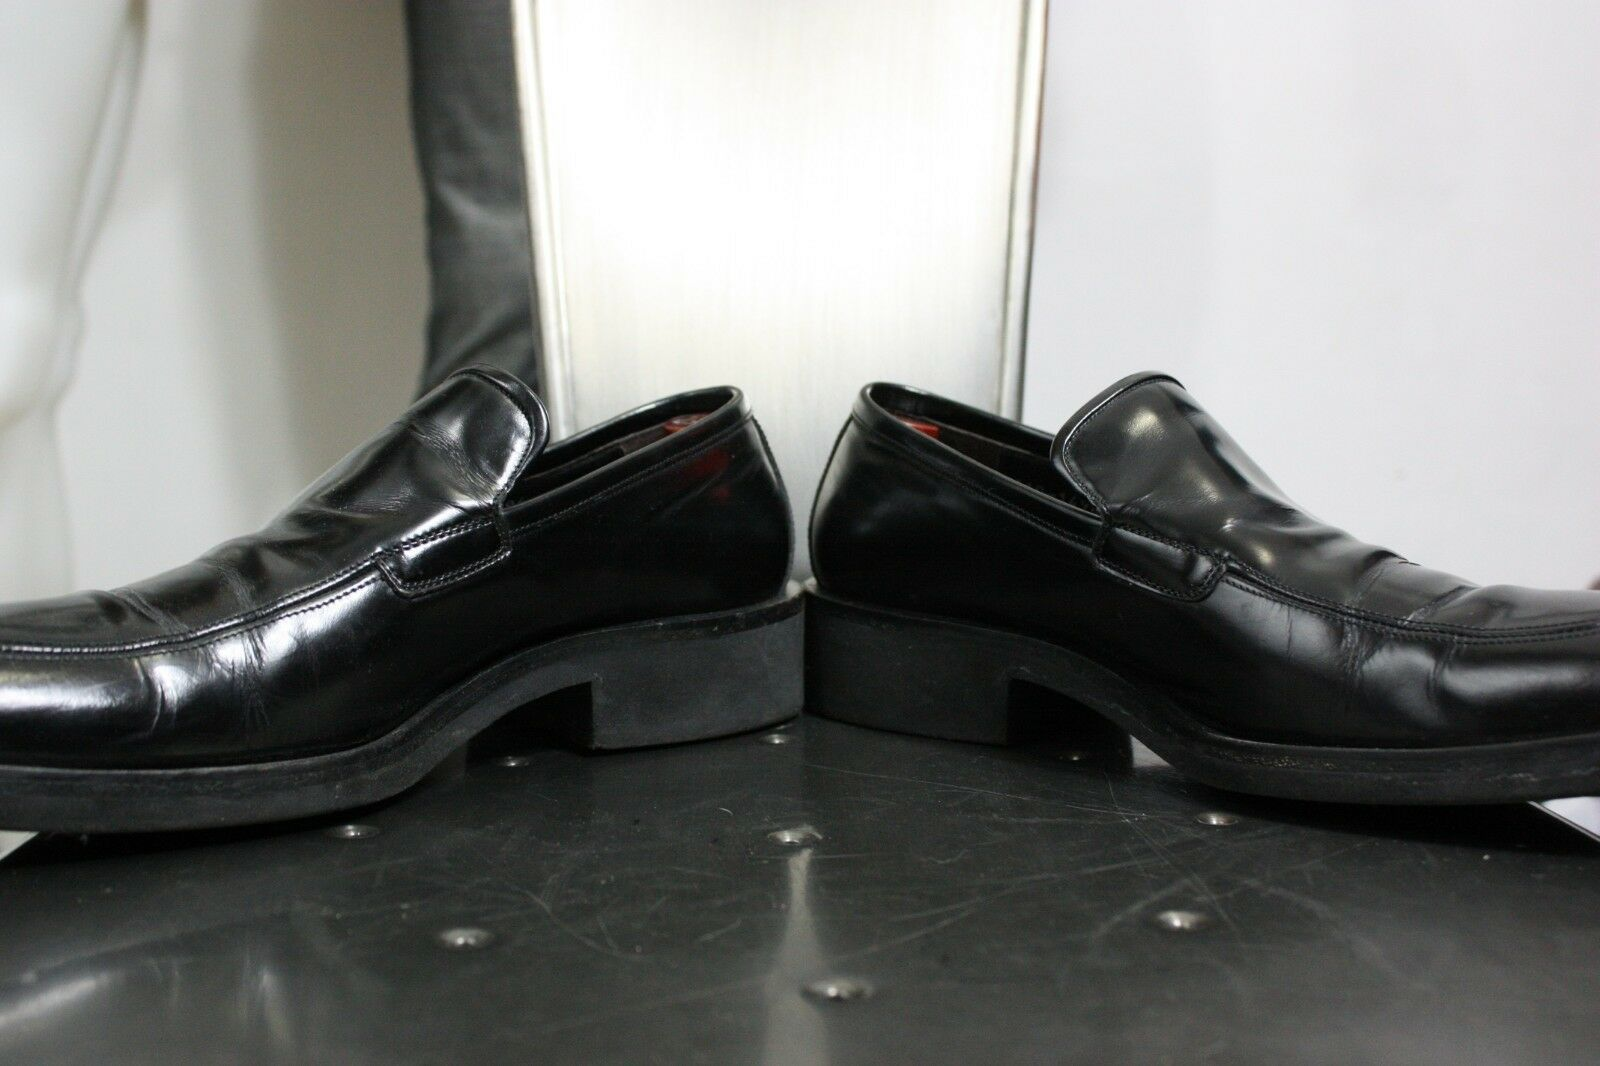 ea6dfe4f3 Gucci patent leather loafers 8 D shoes black vintage 90's made in Italy